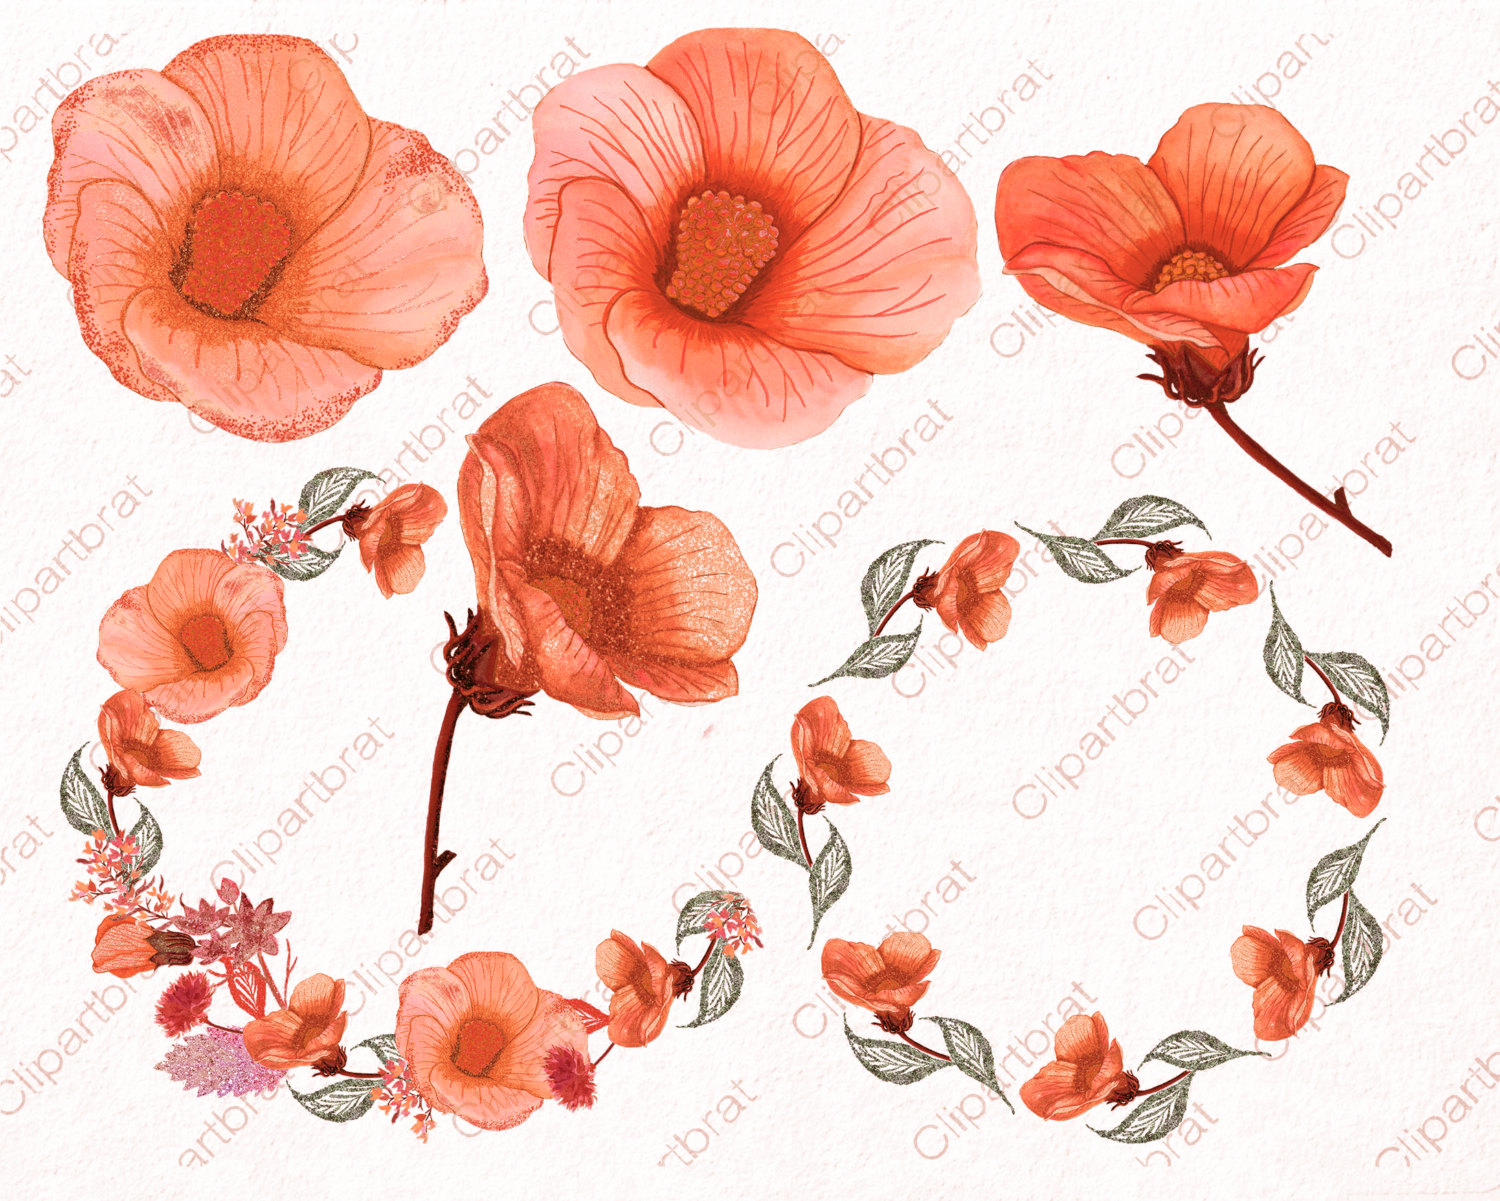 Peach Flower clipart orange HIBISCUS Commercial Autumn PEACH HIBISCUS